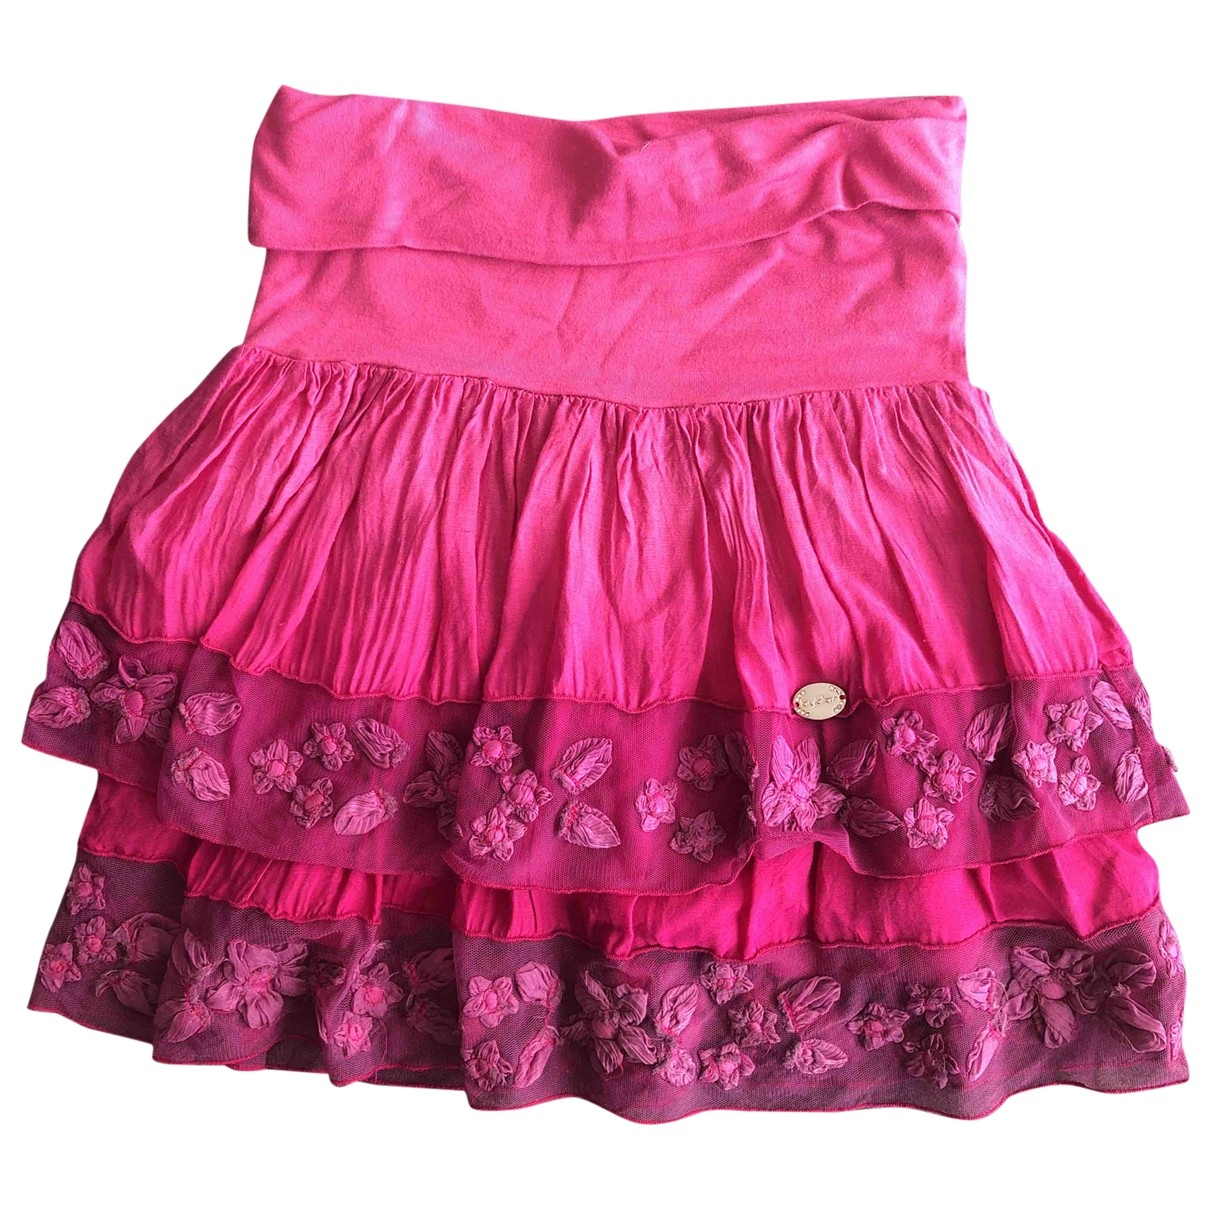 Byblos \N Pink skirt for Kids 8 years - up to 128cm FR